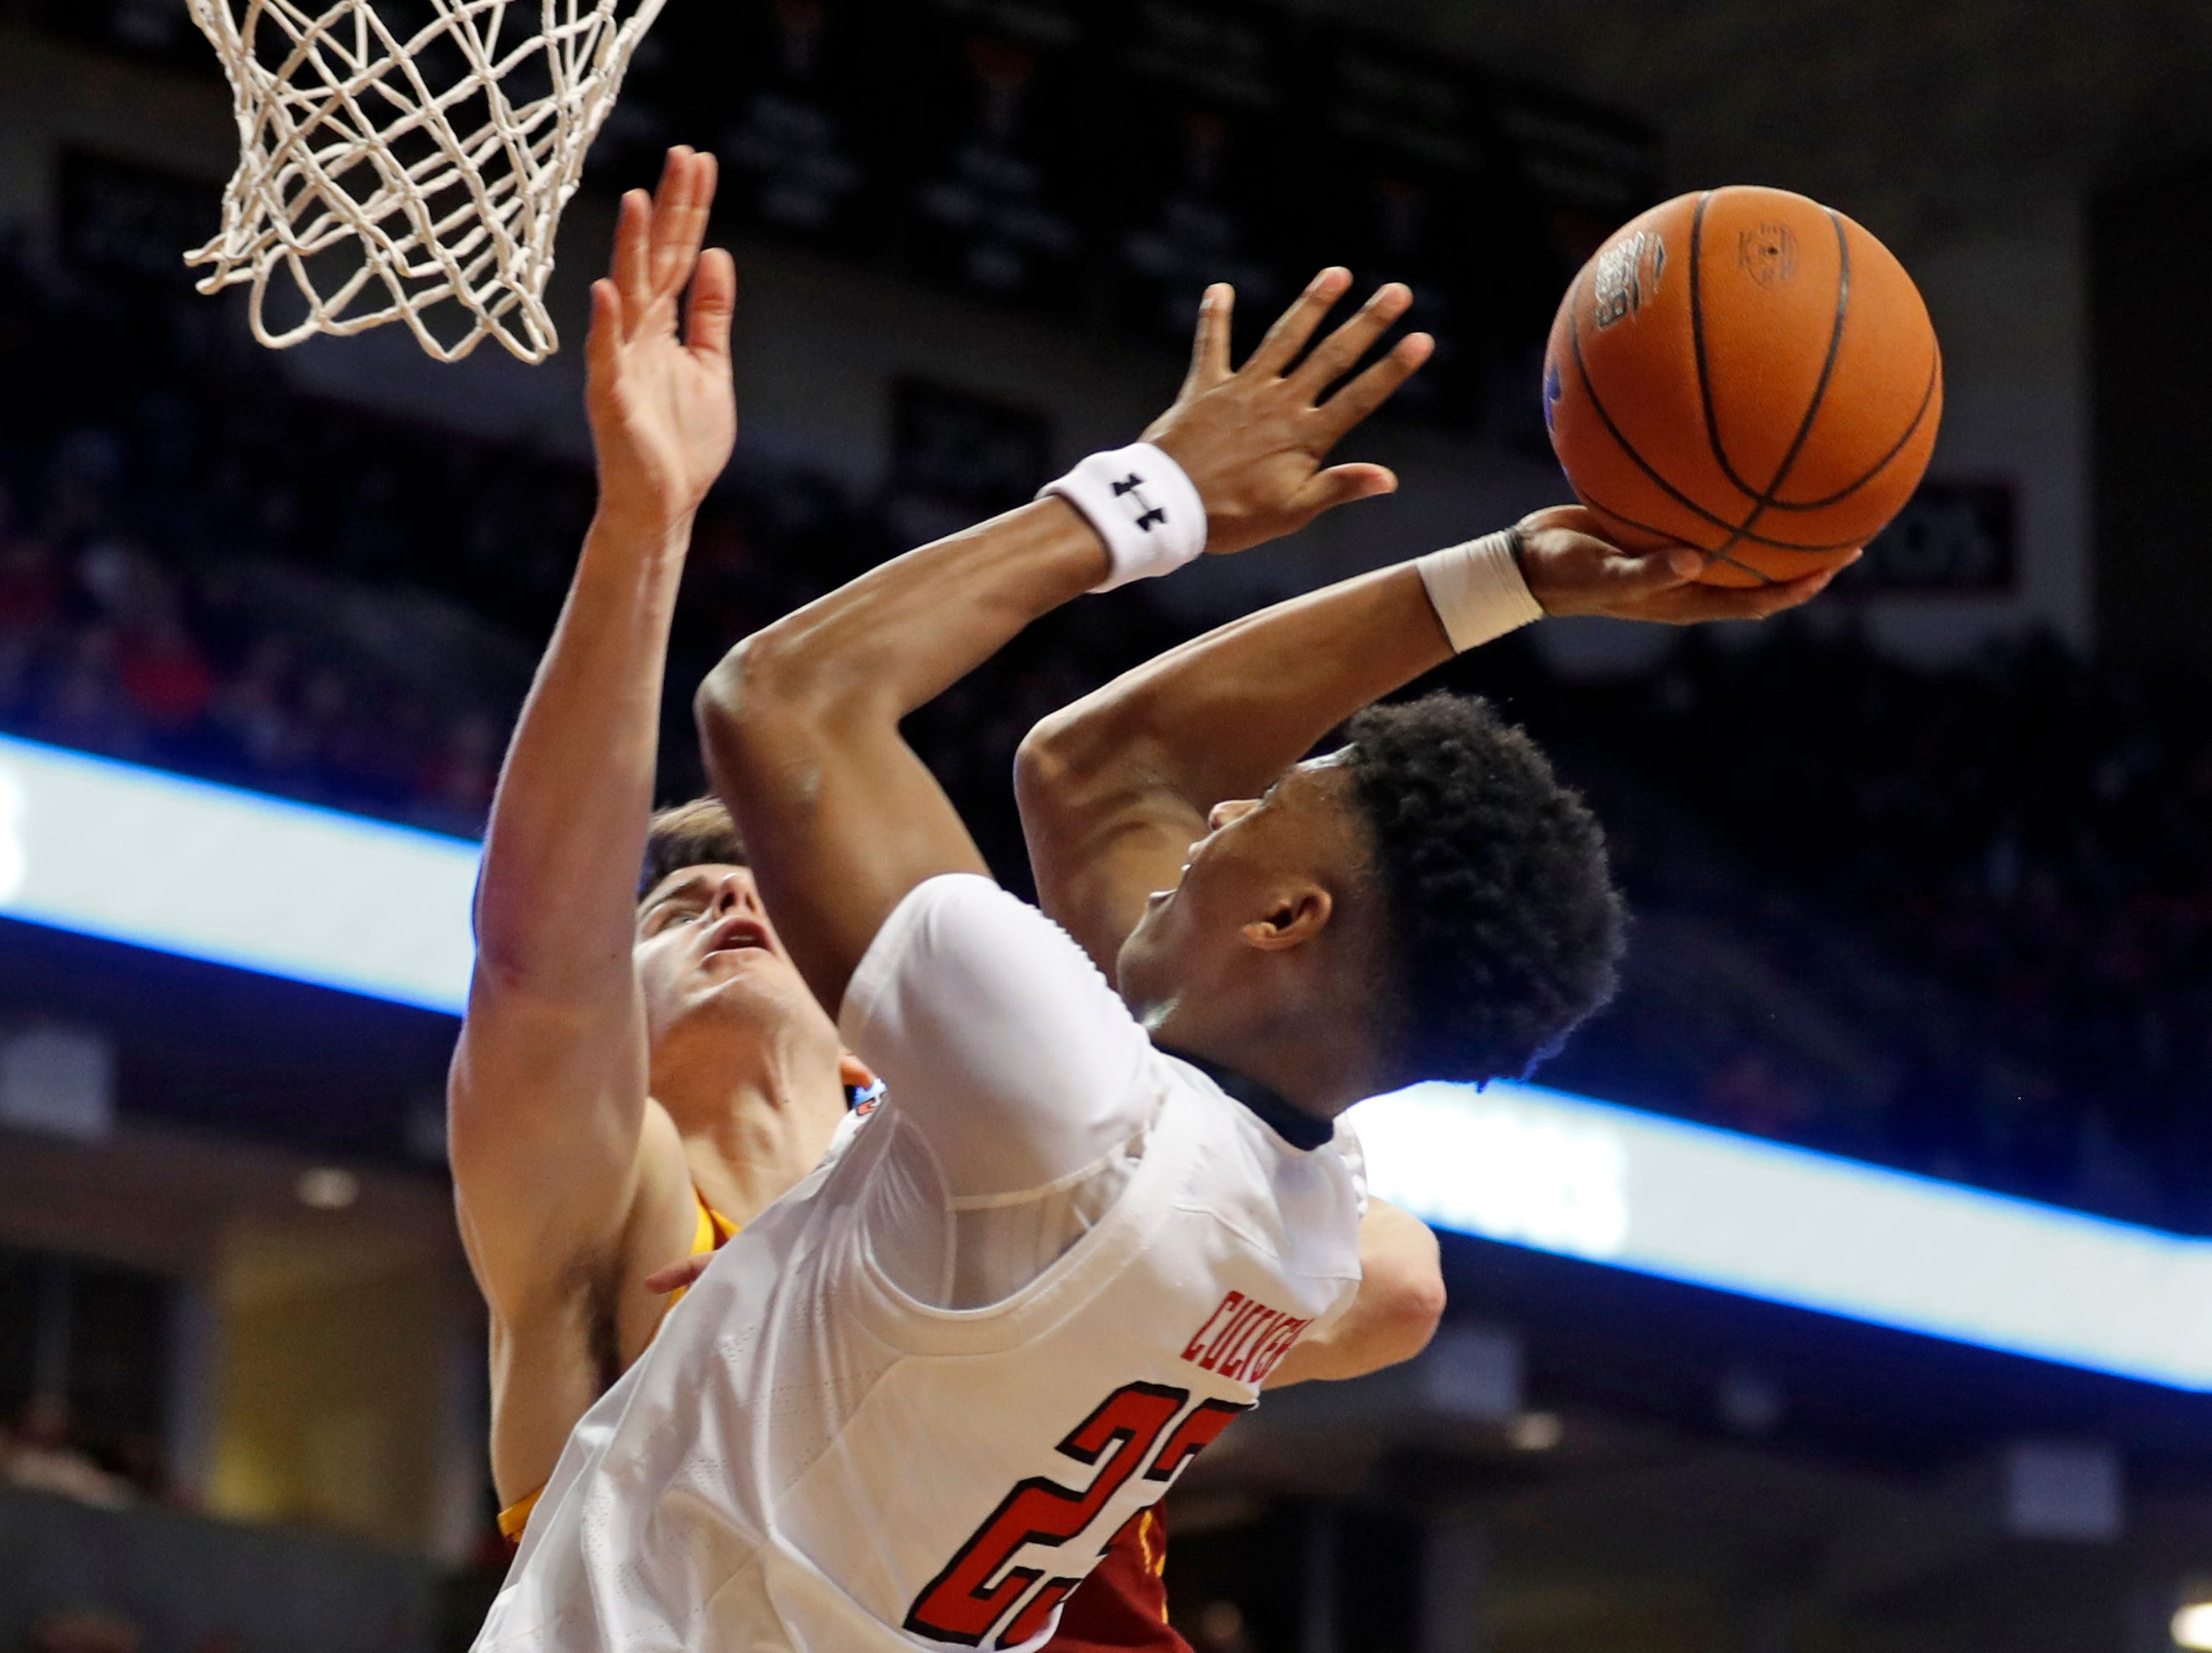 Texas Tech's Jarrett Culver (23) shoots as he is fouled by Iowa State's Michael Jacobson during the first half of an NCAA college basketball game Wednesday, Jan. 16, 2019, in Lubbock, Texas.